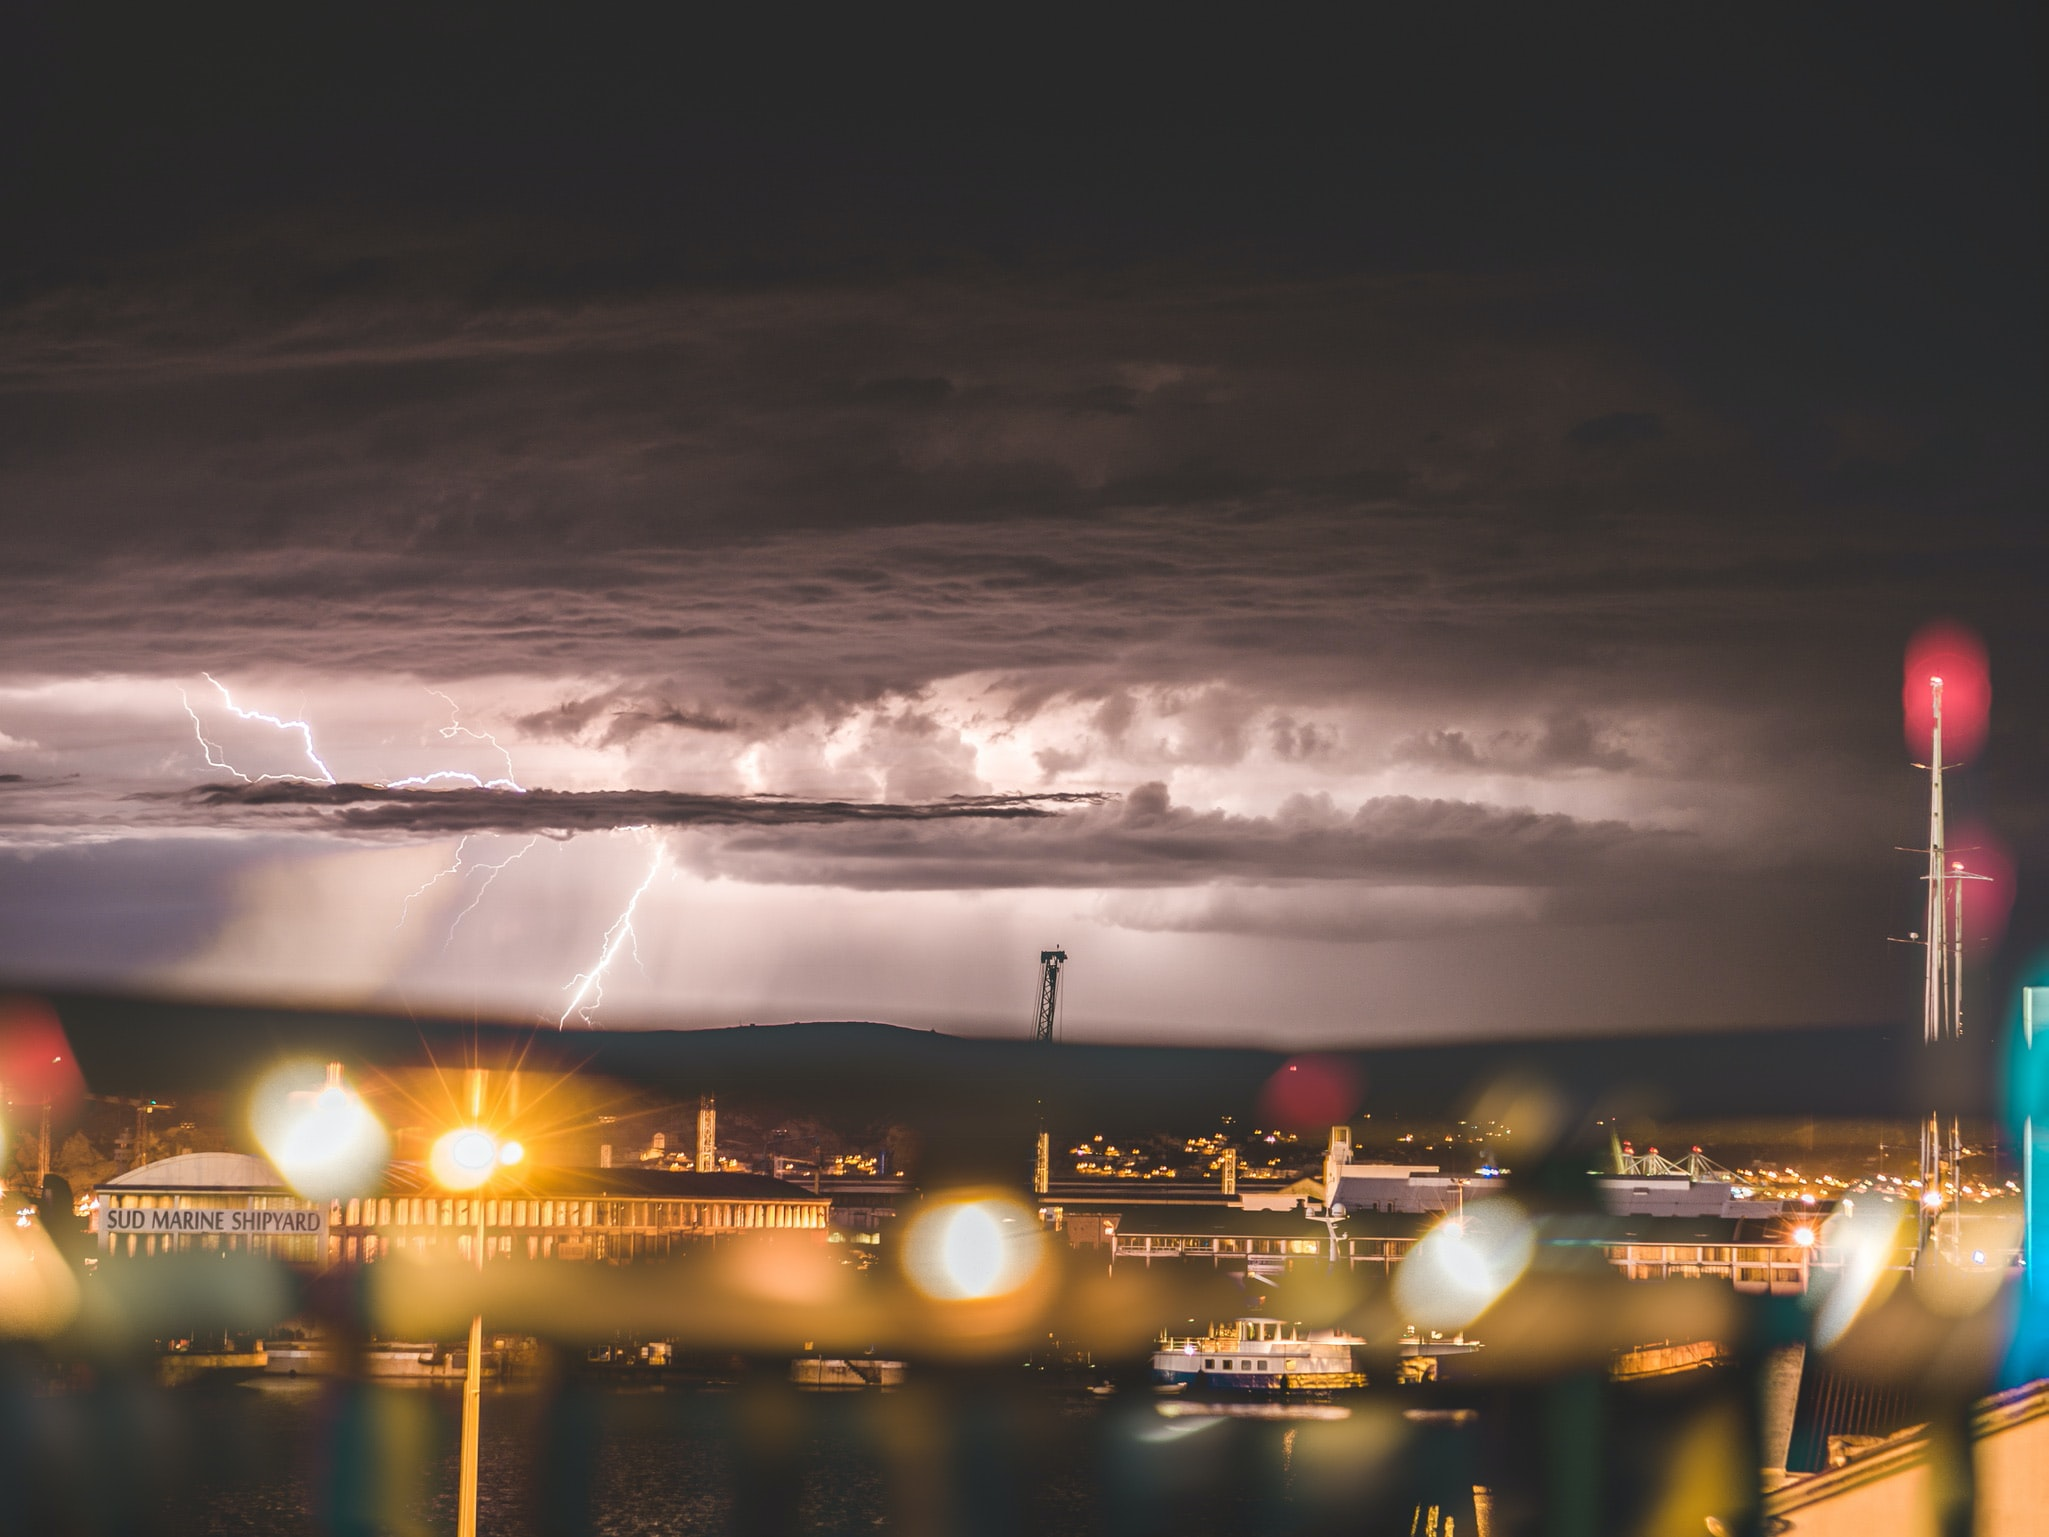 high angle photography of buildings under gray sky with lighting strikes